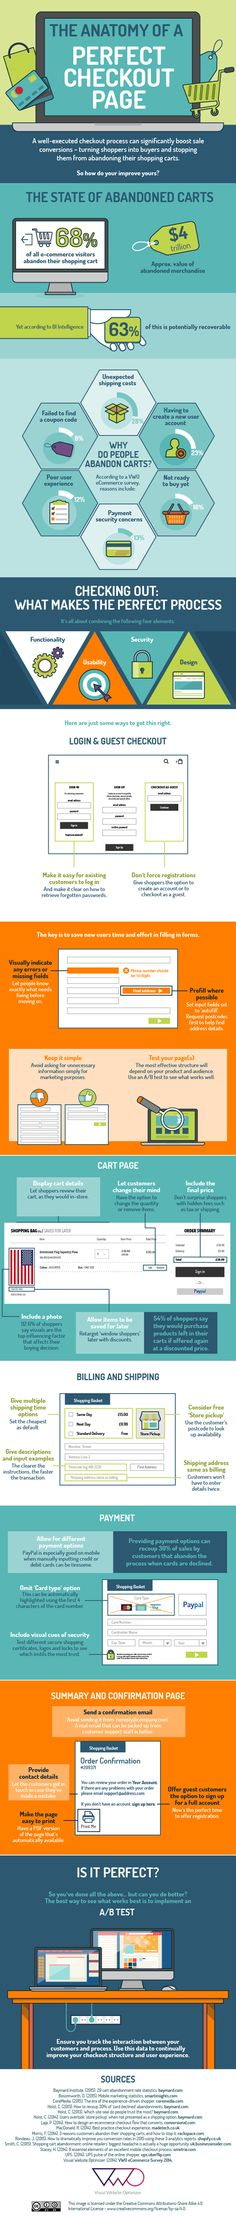 The Anatomy of the Perfect Checkout Page [Infographic], via @HubSpot